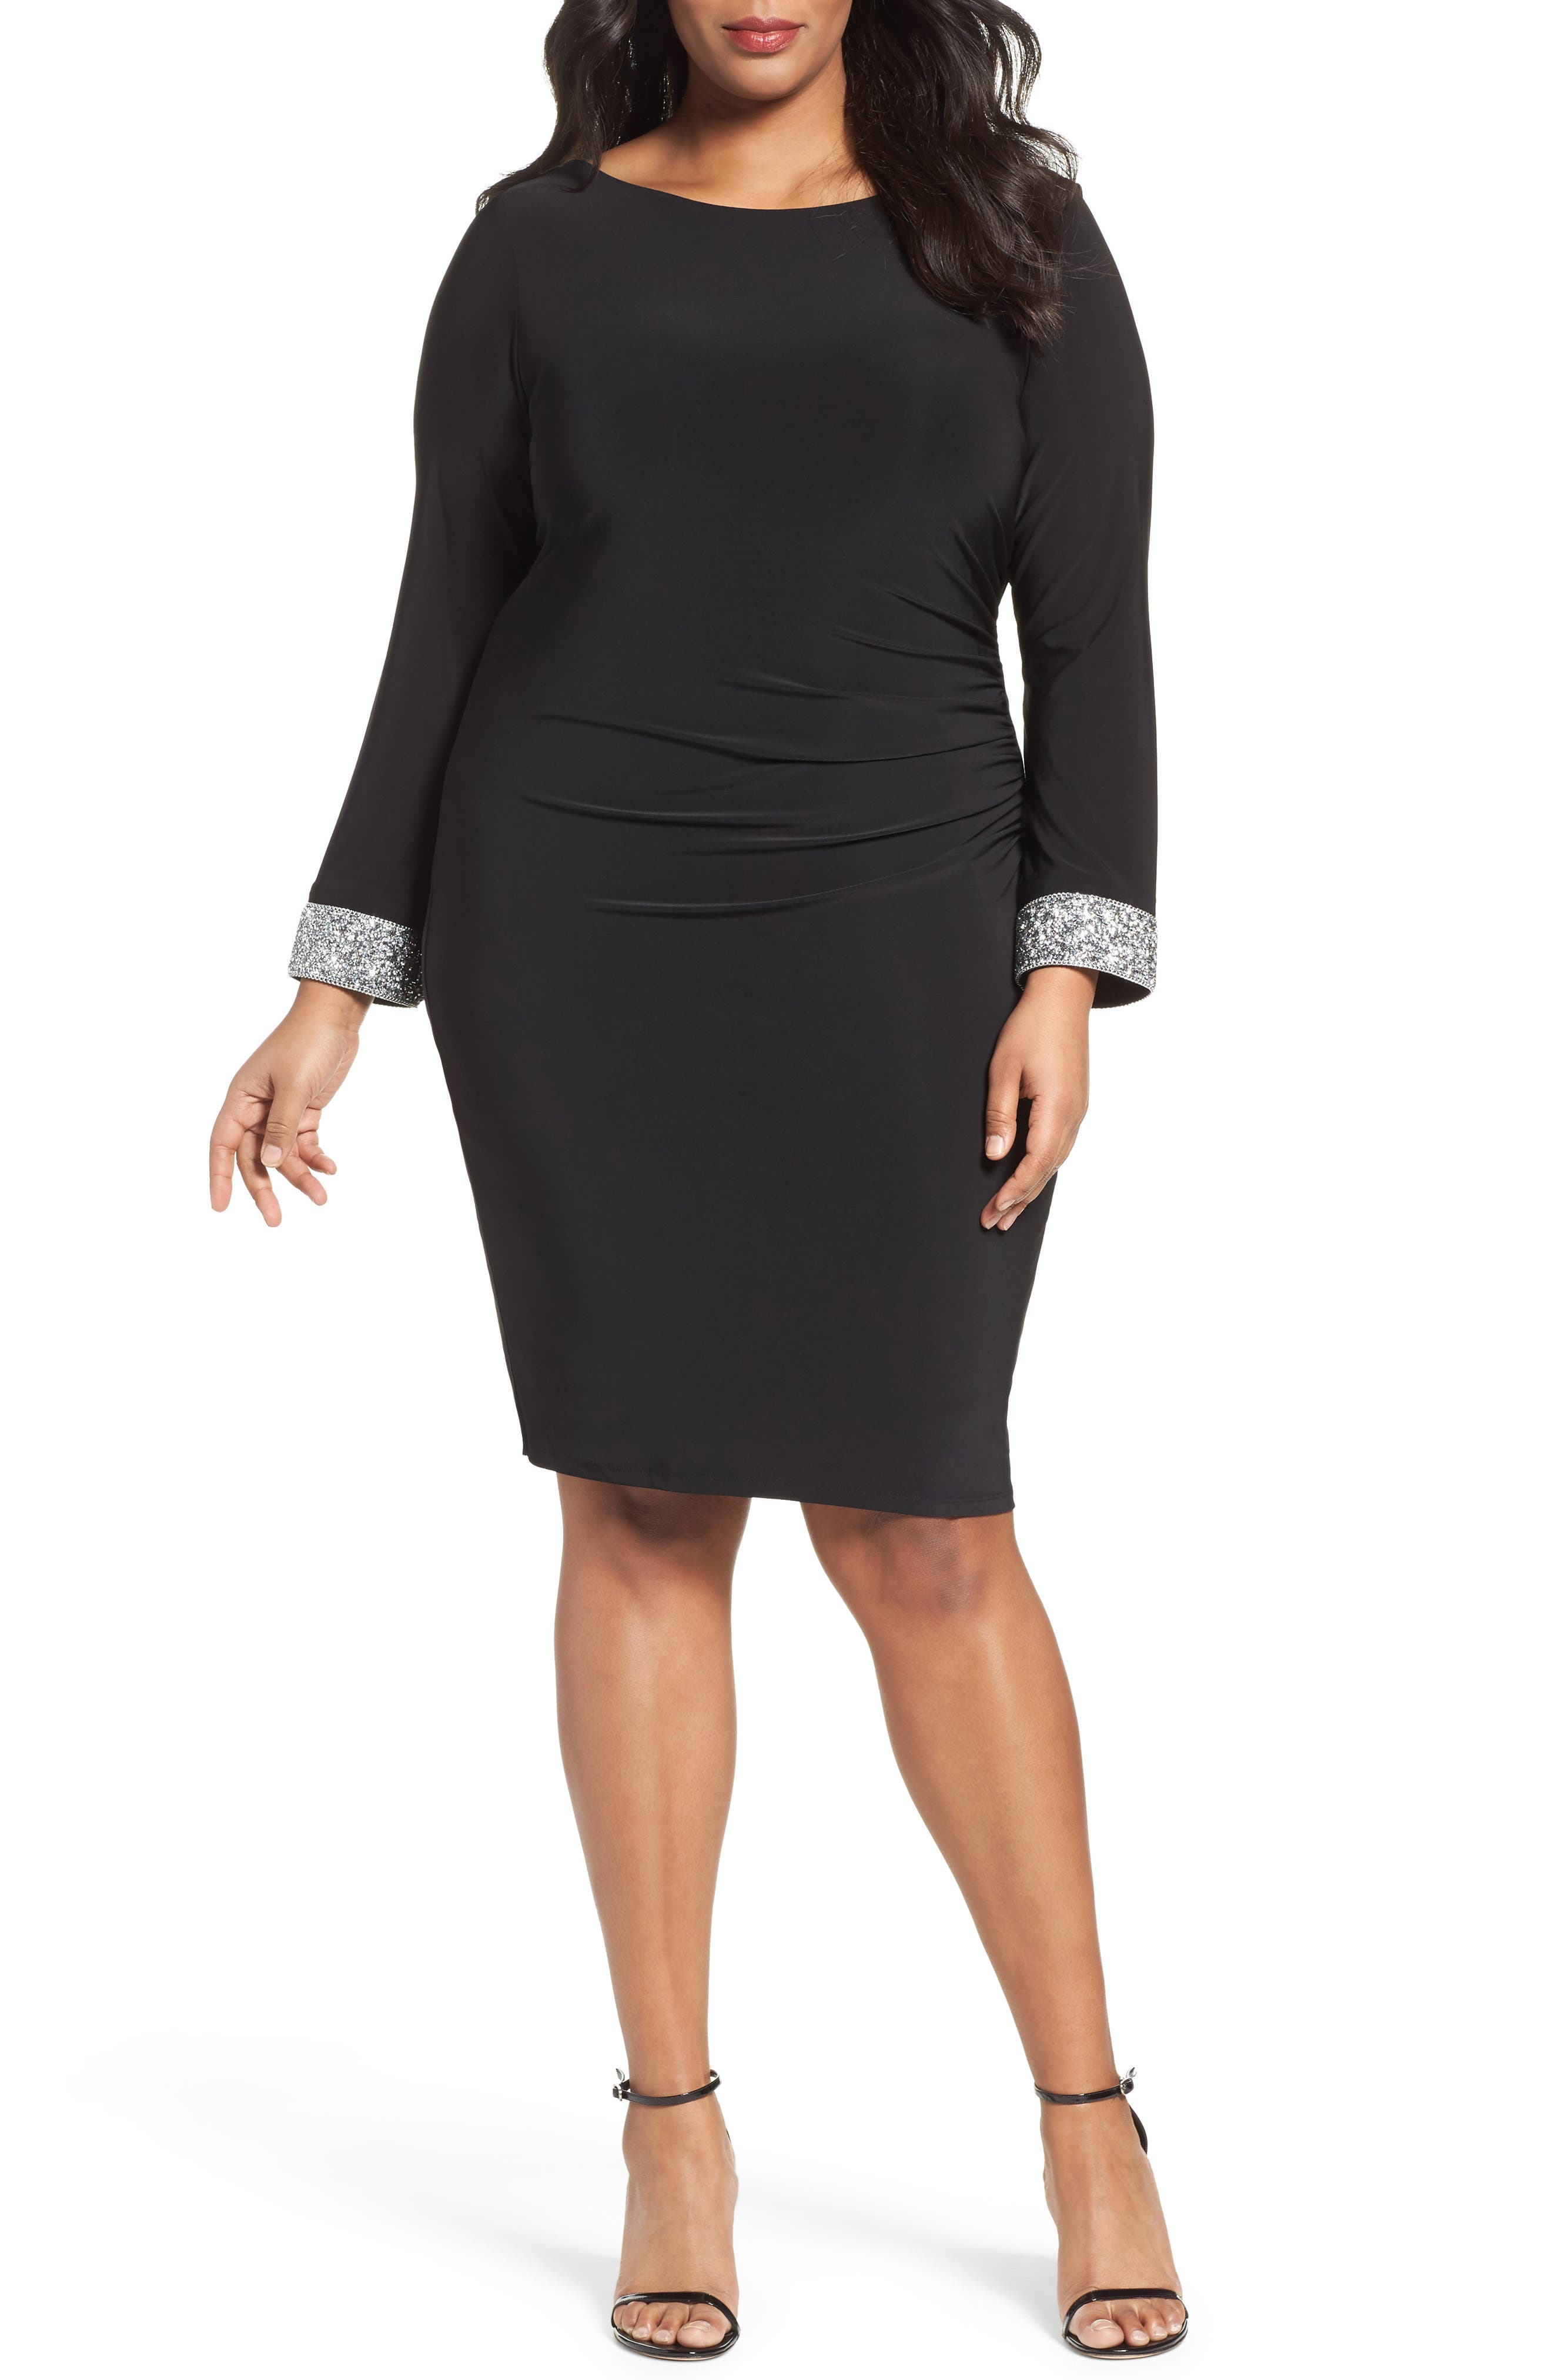 Alternate Image 1 Selected - Marina Open Back Sheath Dress (Plus Size)